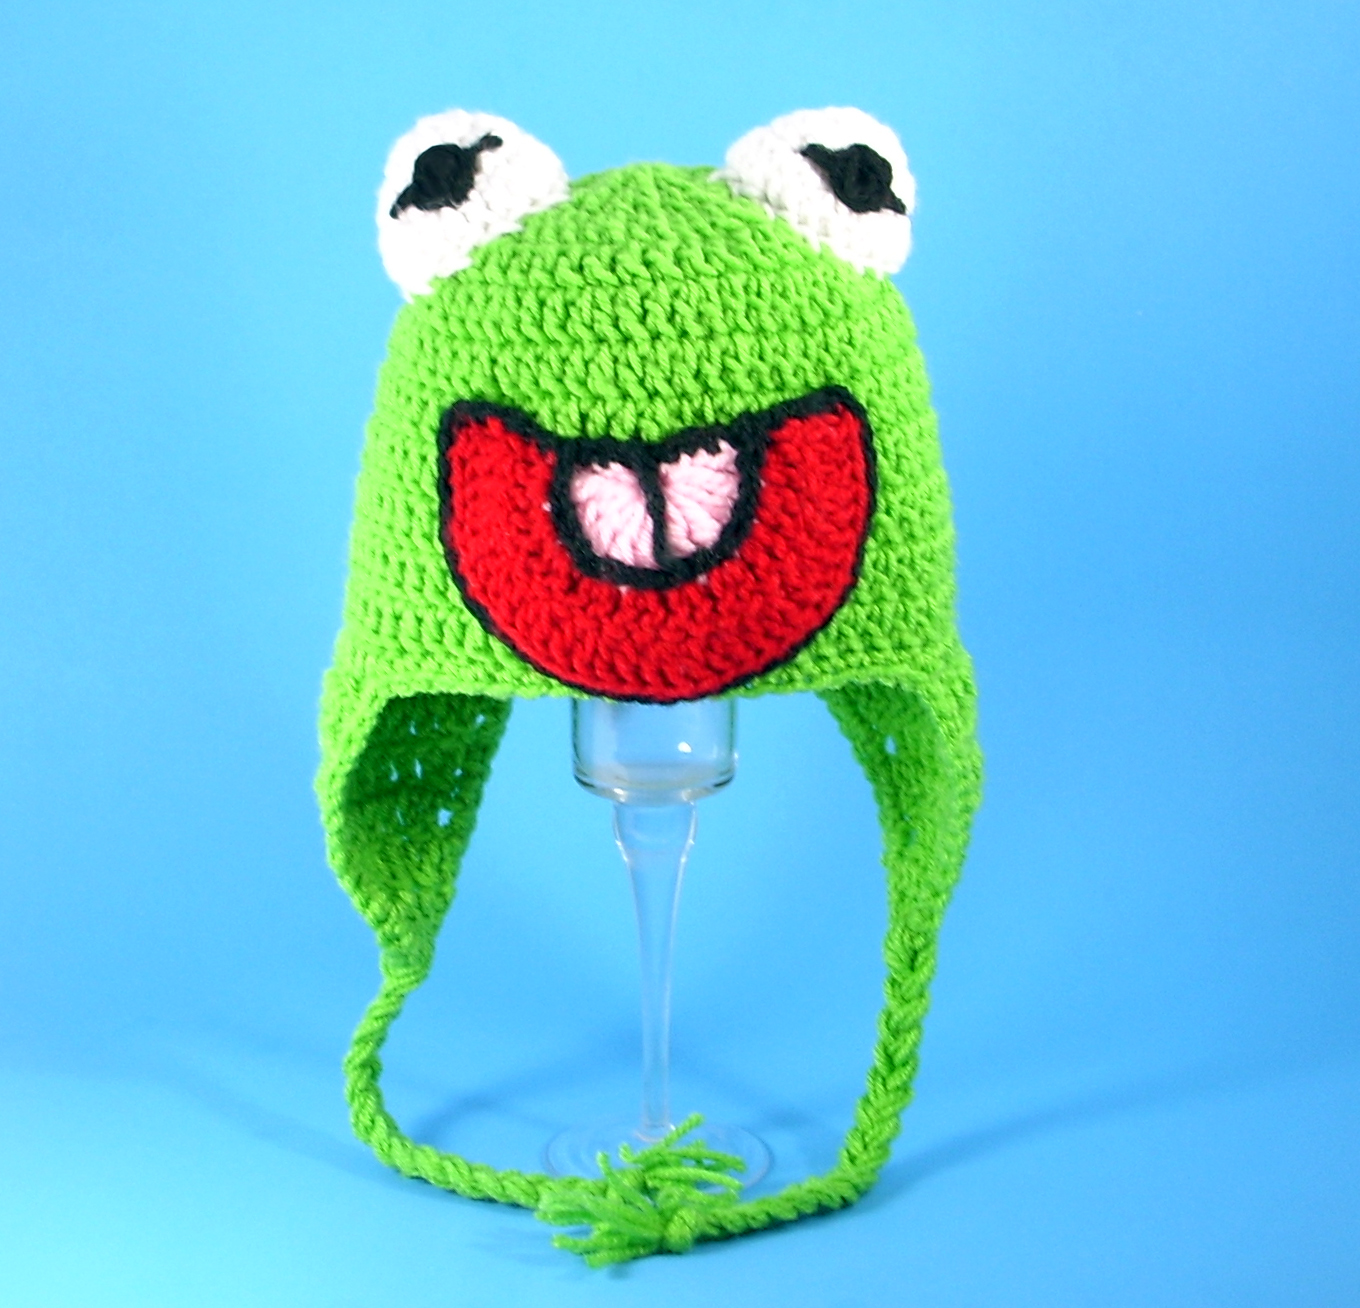 Kermit the Frog Earflap Hat from The Muppets